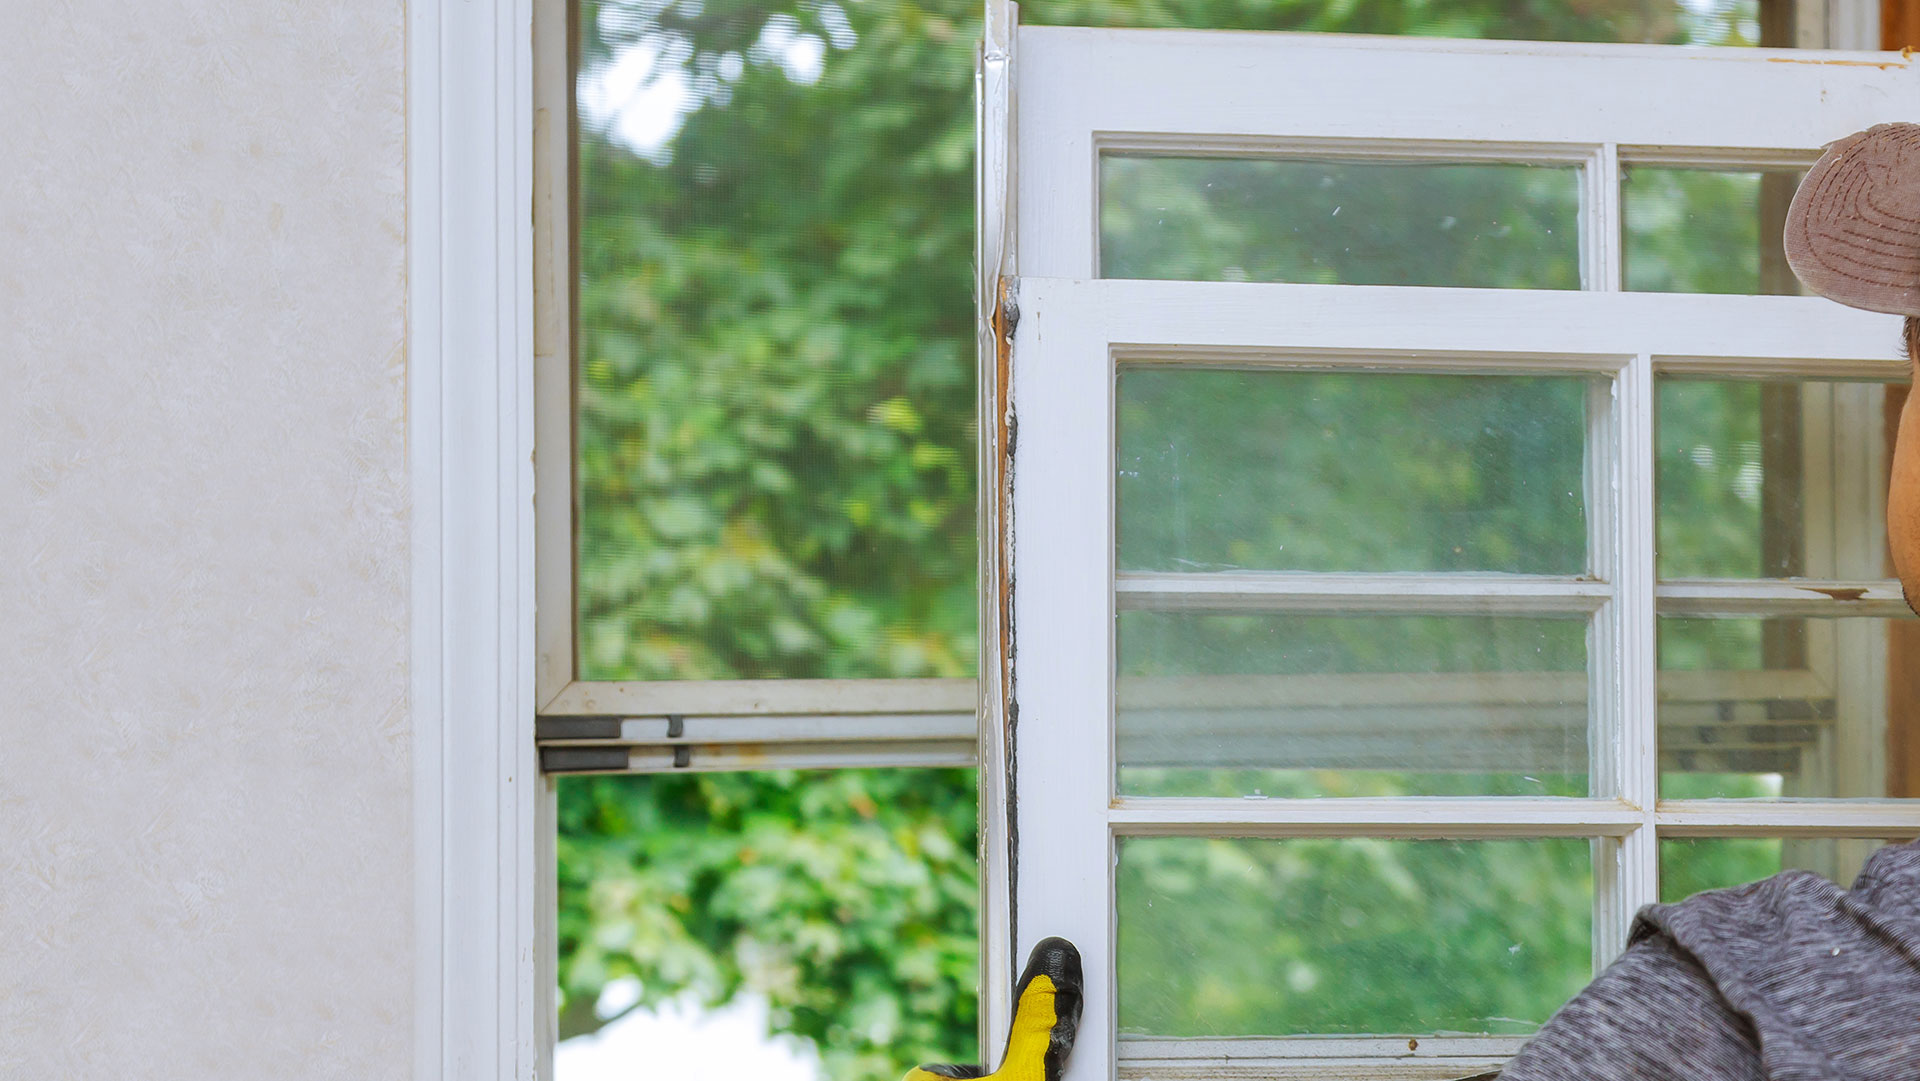 Littleton Window Replacement, Siding Services and Window Installation